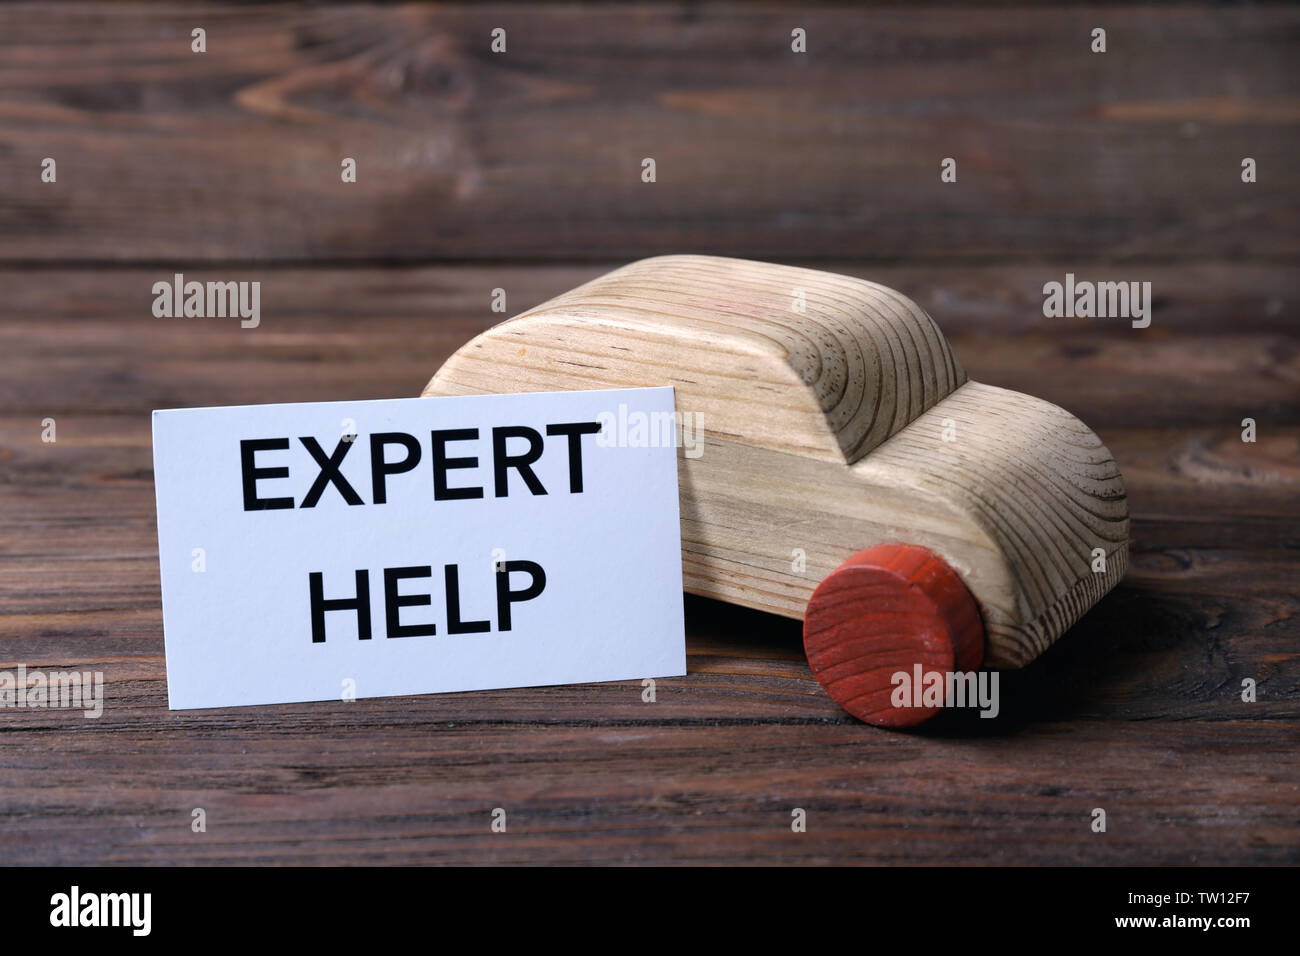 Wooden toy car and paper with phrase EXPERT HELP on wooden background - Stock Image